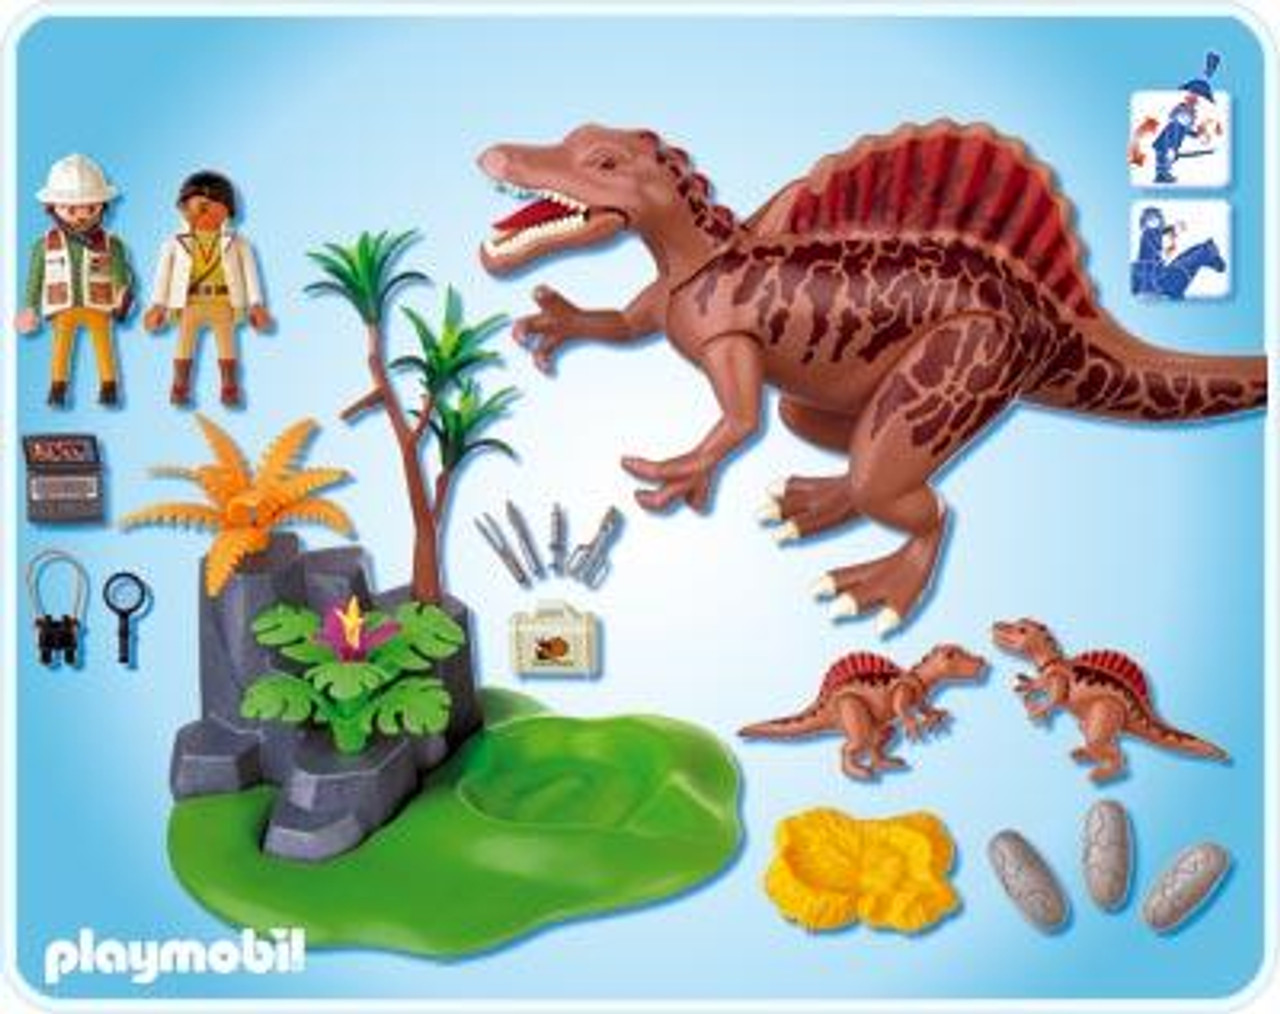 Playmobil dinos spinosaurus with dino nest set 4174 toywiz - Dinosaur playmobile ...